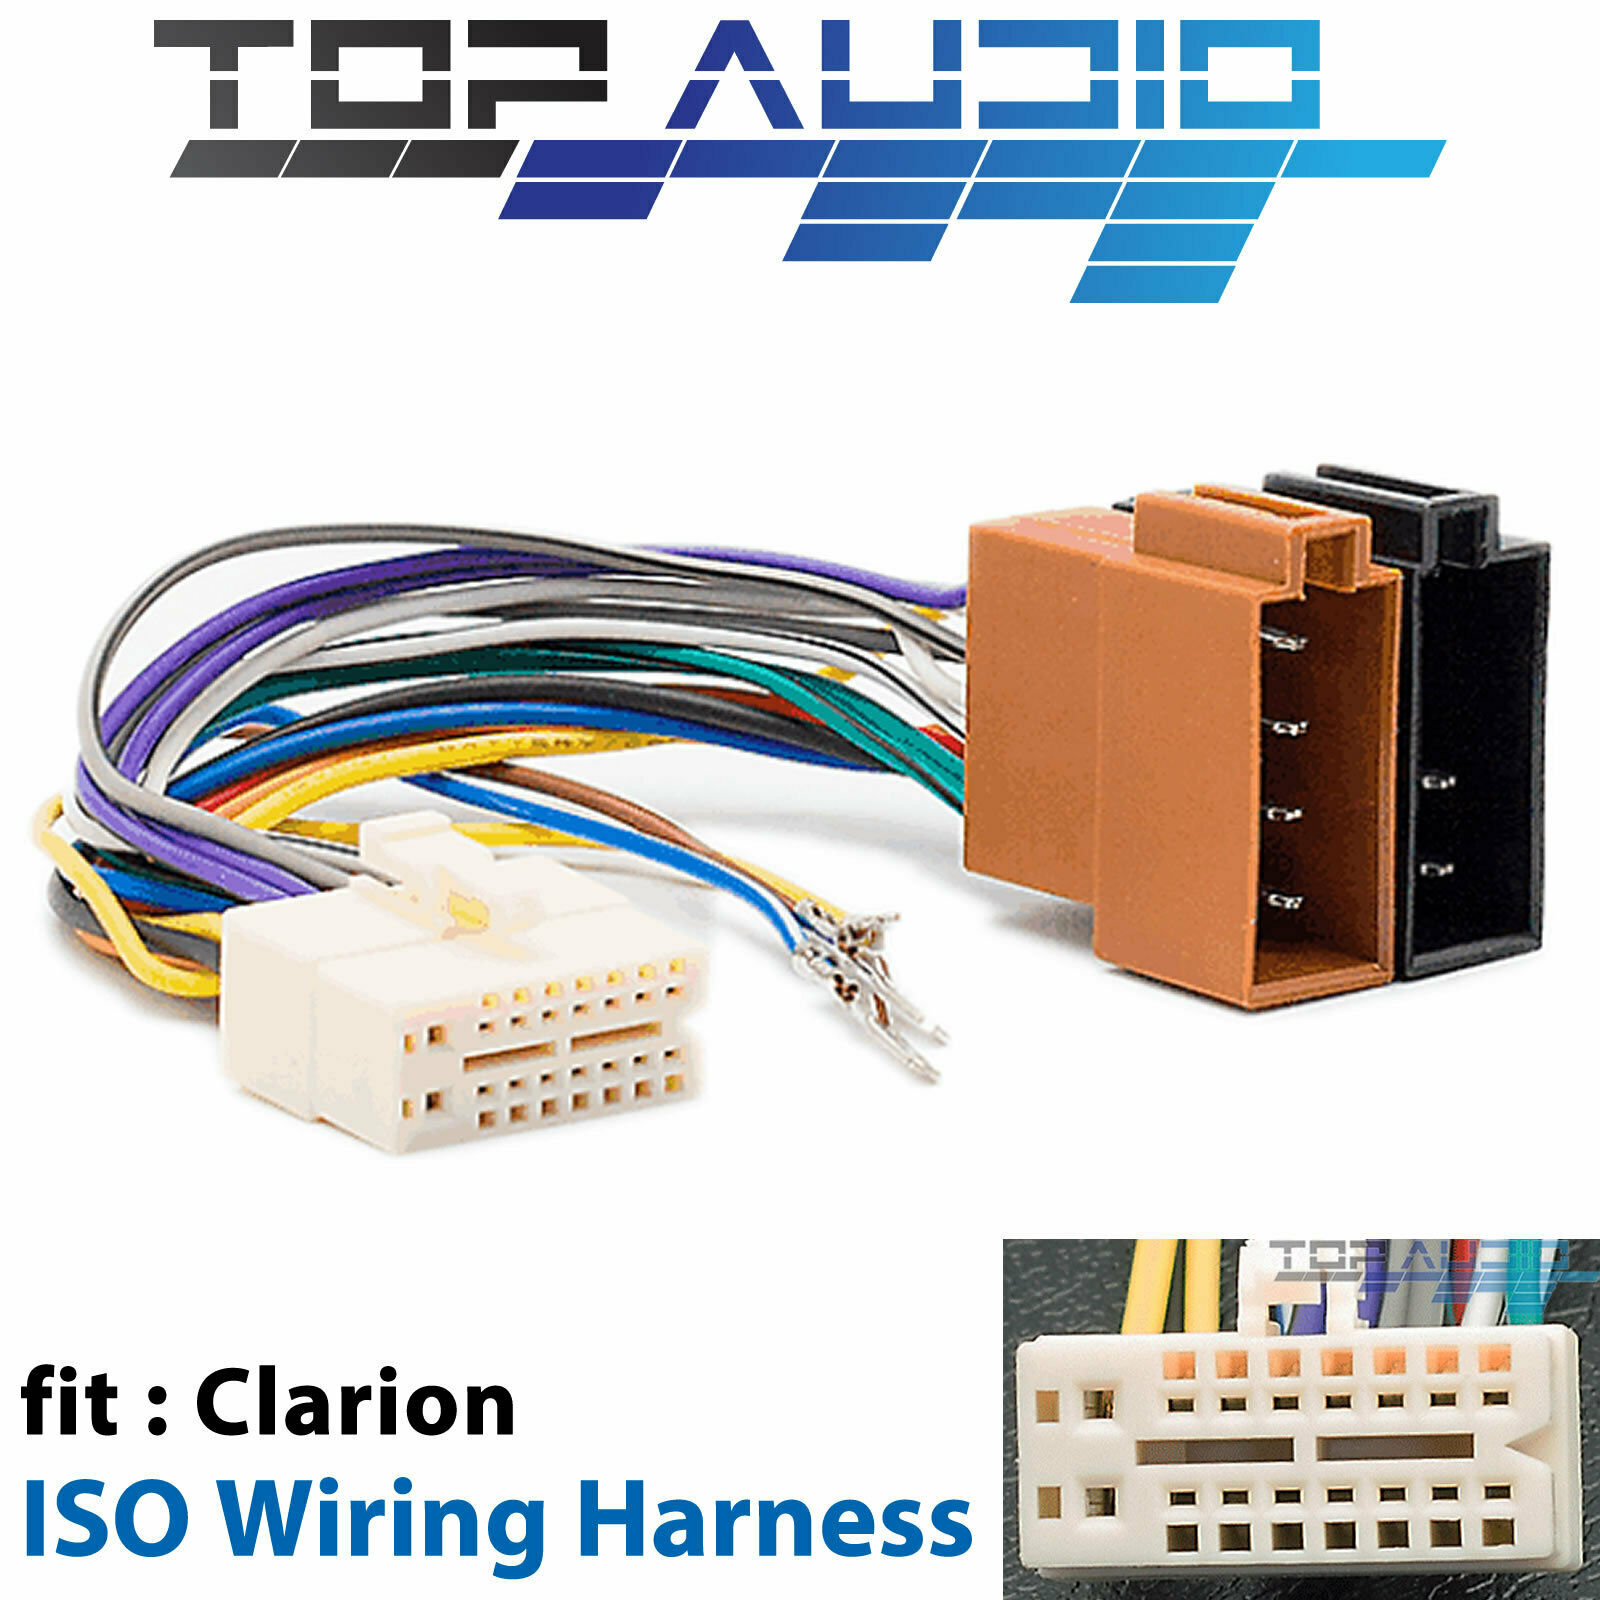 Clarion CZ305AU ISO Wiring Harness cable connector adaptor lead loom wire  plug 1 of 3Only 5 available See More